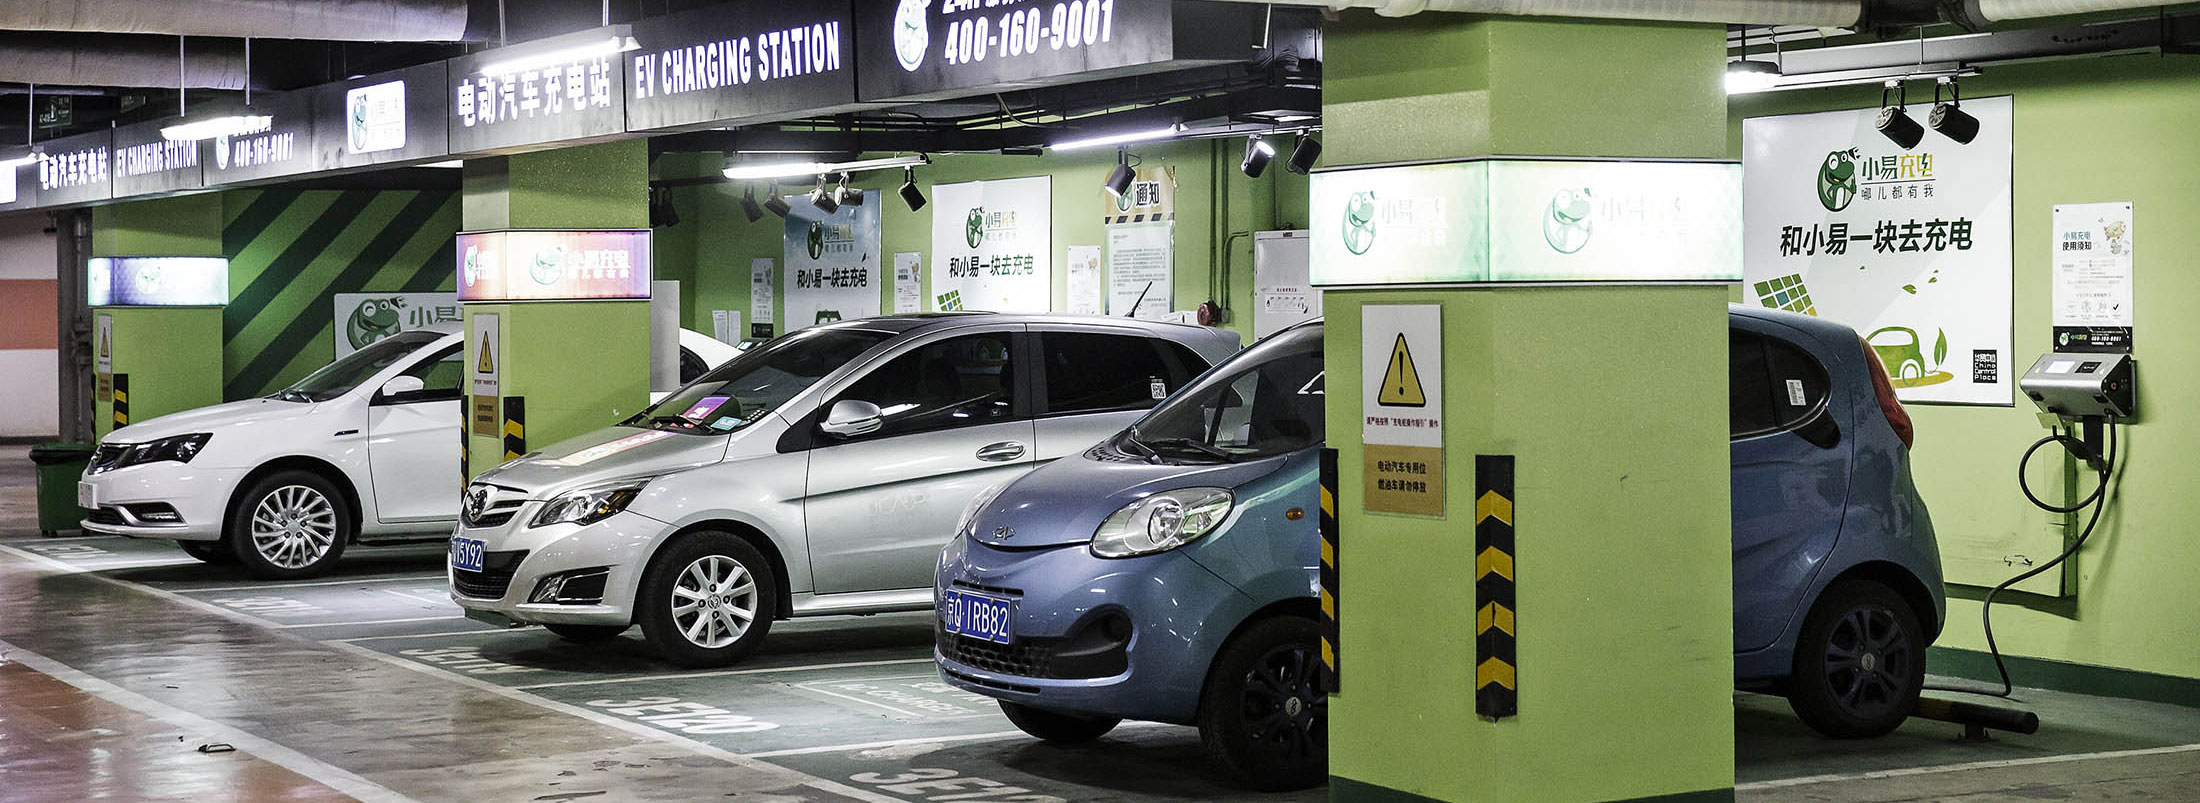 China Fossil Fuel Deadline Shifts Focus to Electric Car Race